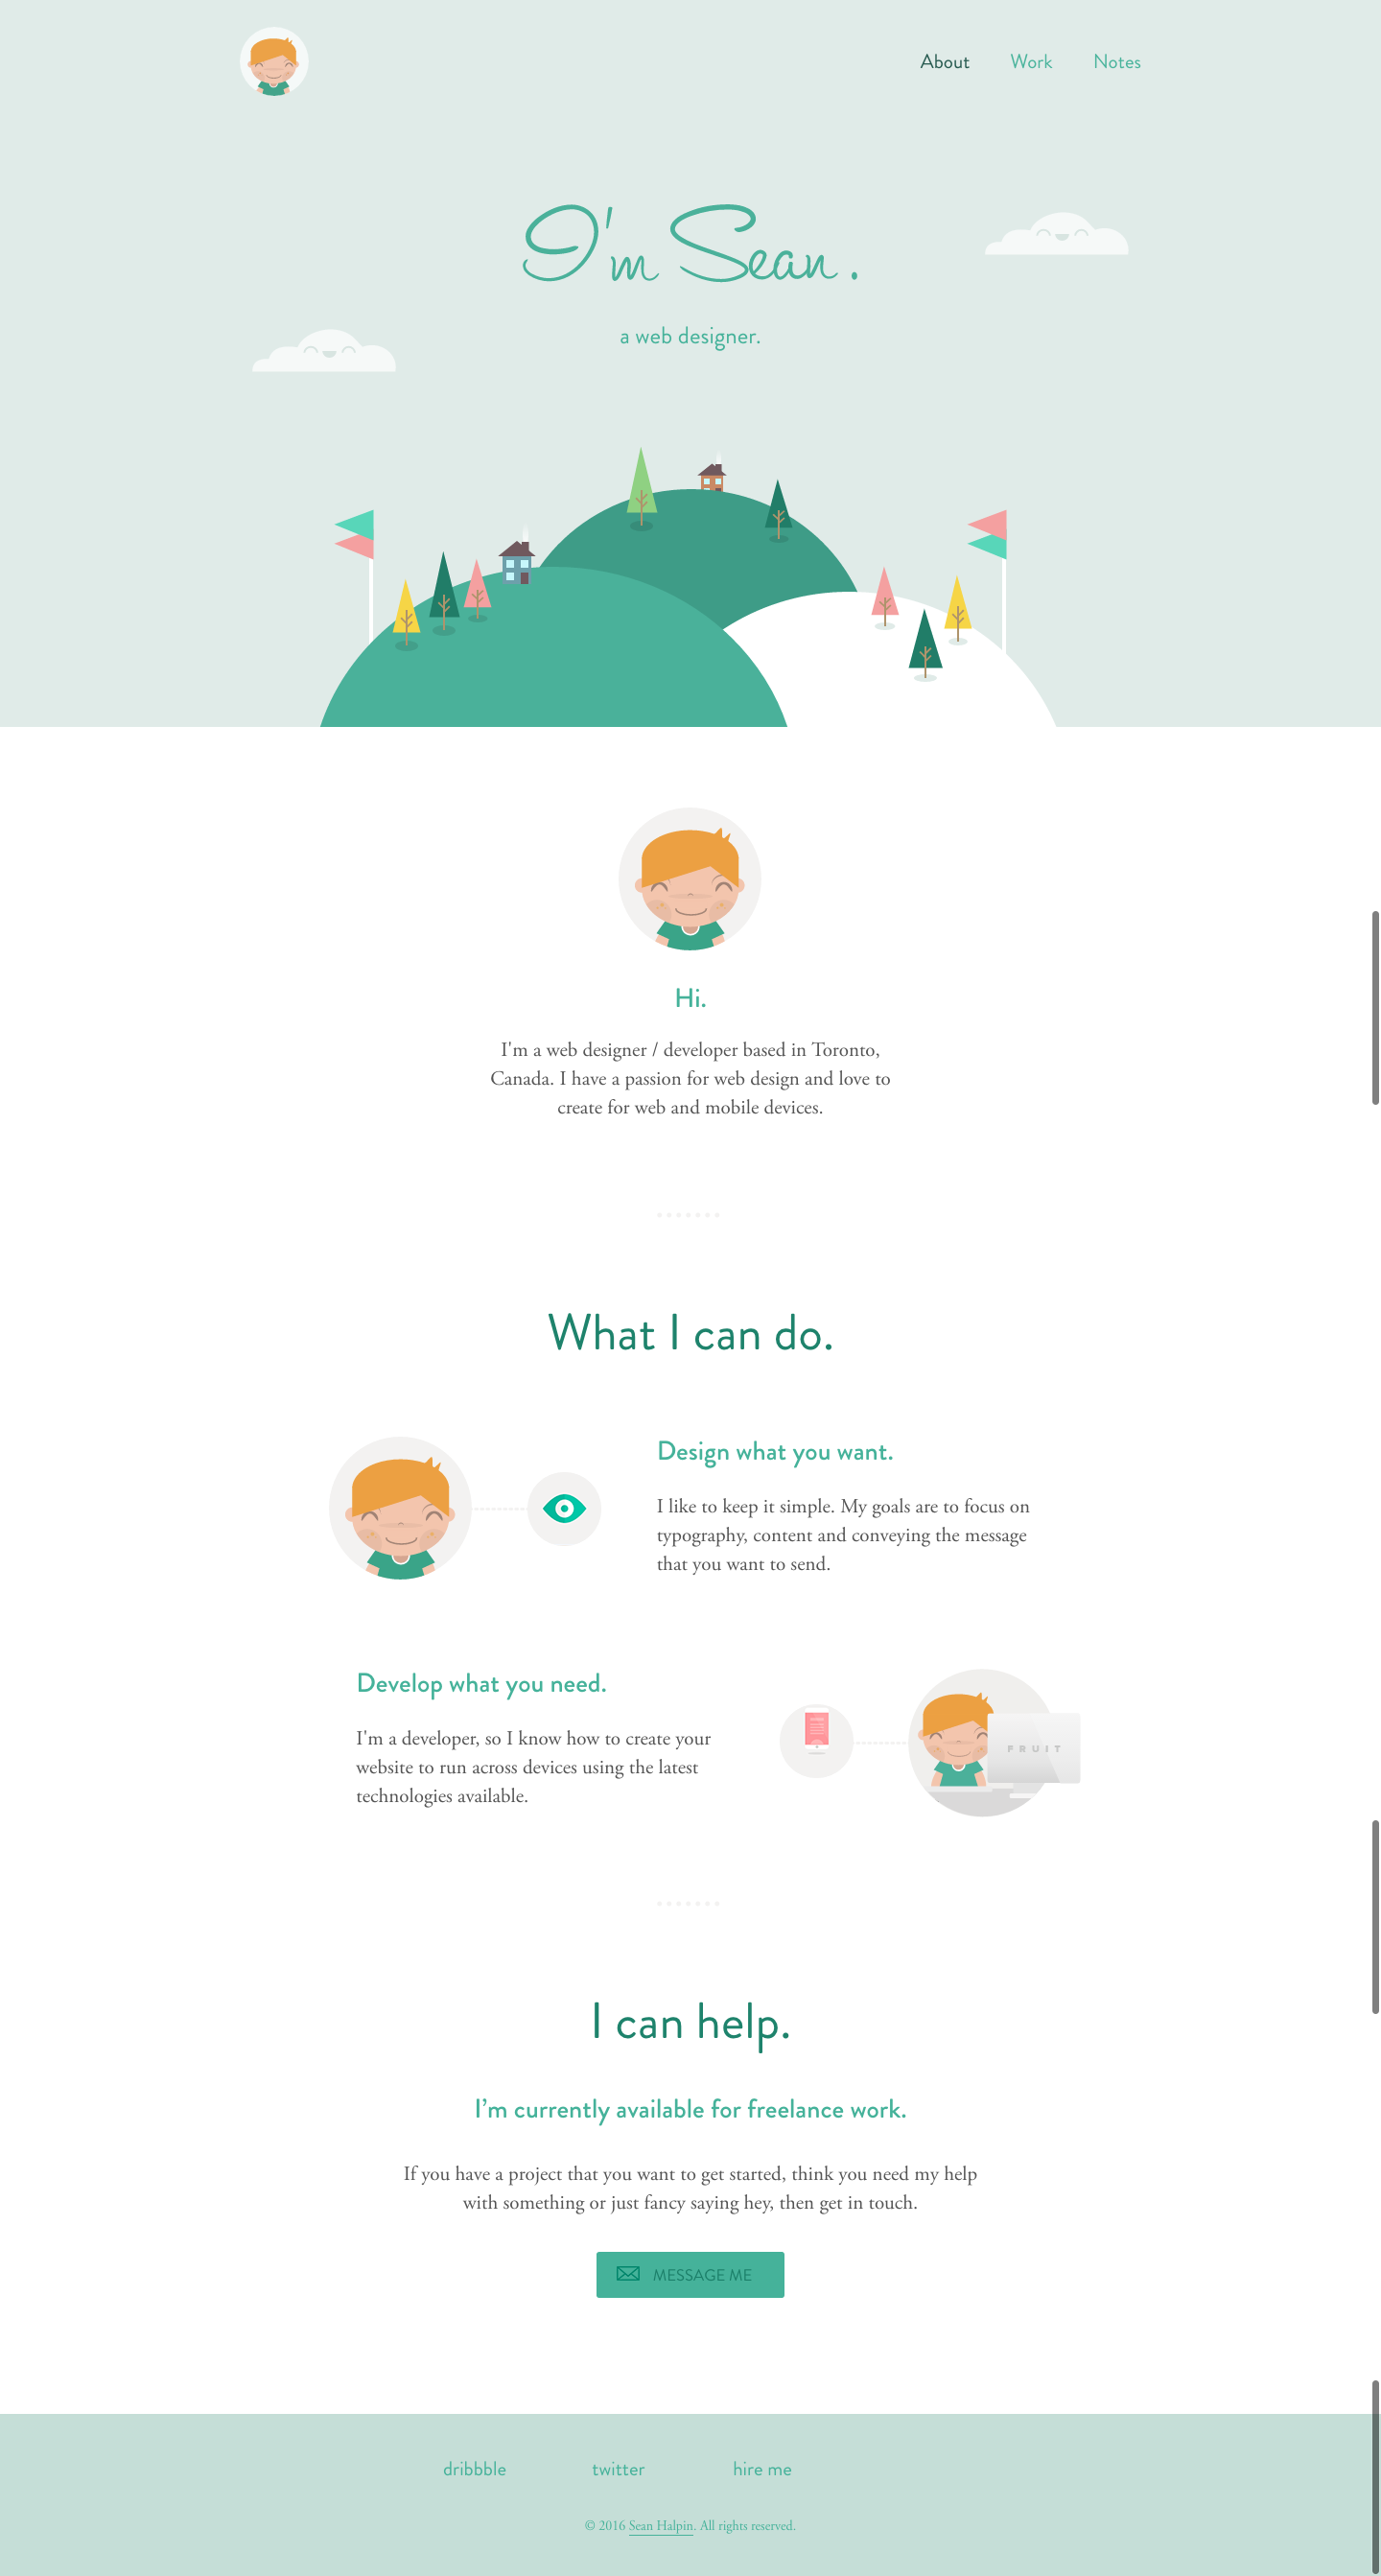 Personal website of web designer Sean Halpin with soft white and green colors and personal avatar